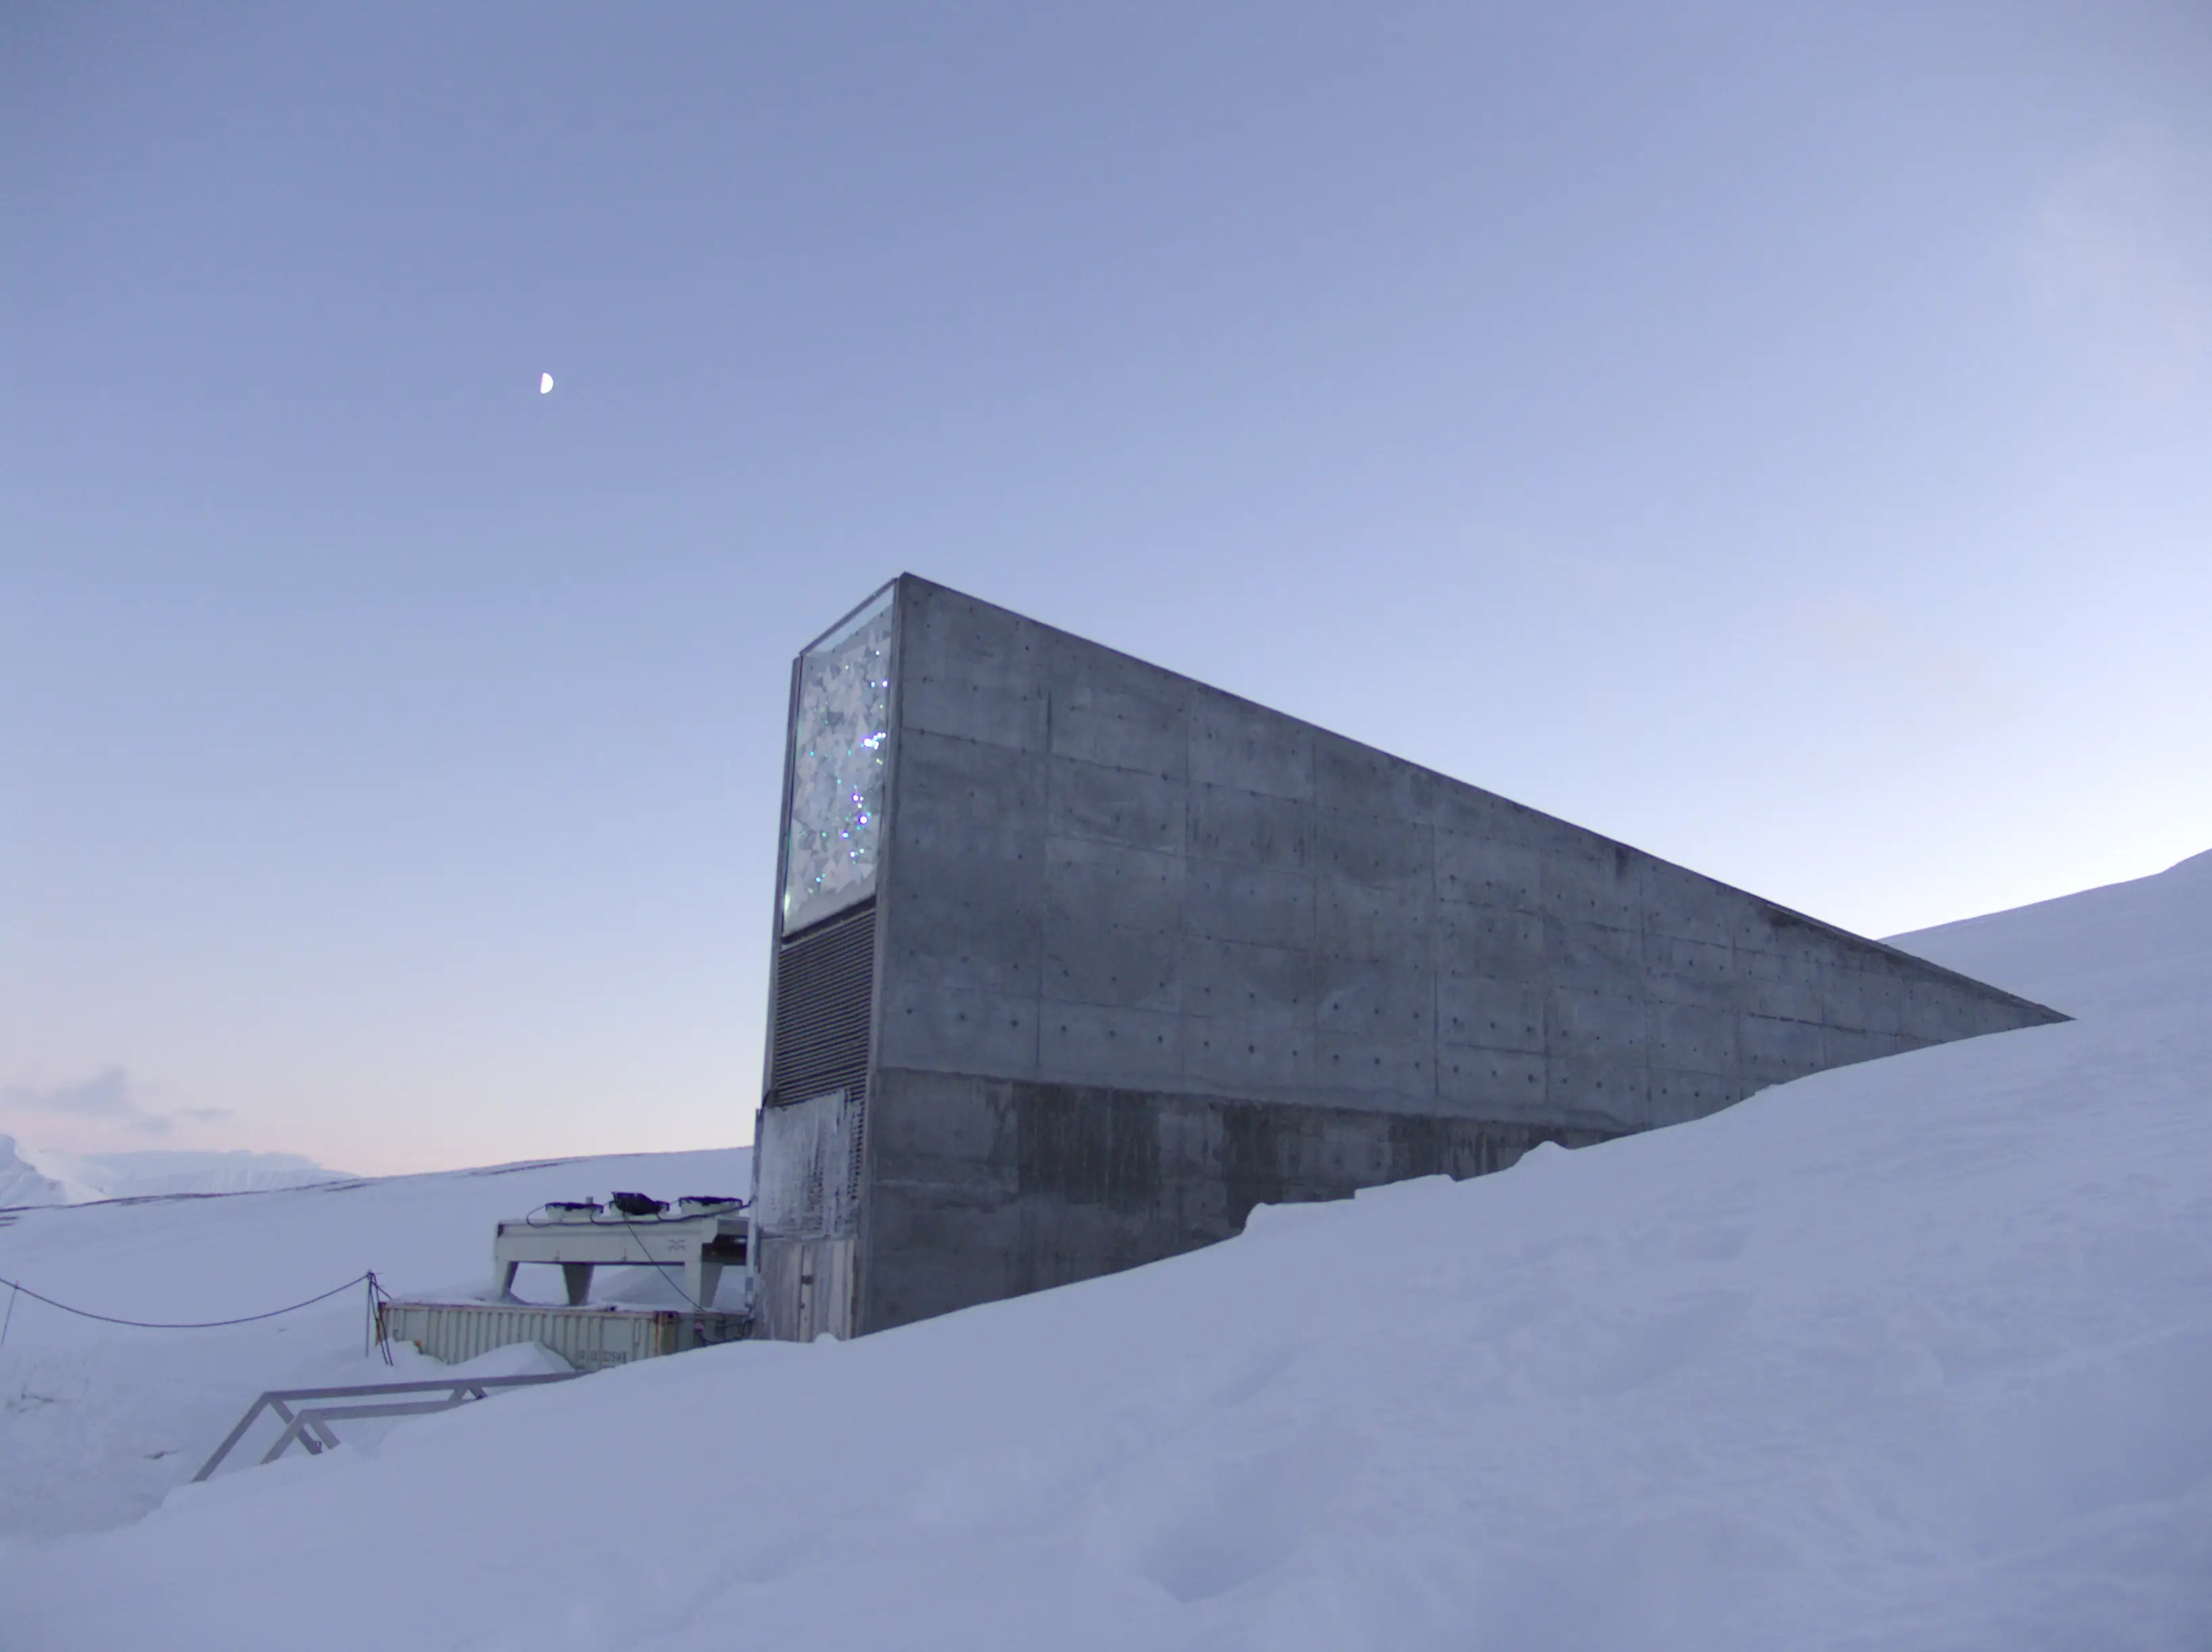 82. The beautifully designed Svalbard Global Seed Vault stores hundreds of thousands of seeds, with the aim of protecting them in the event of a global apocalypse.